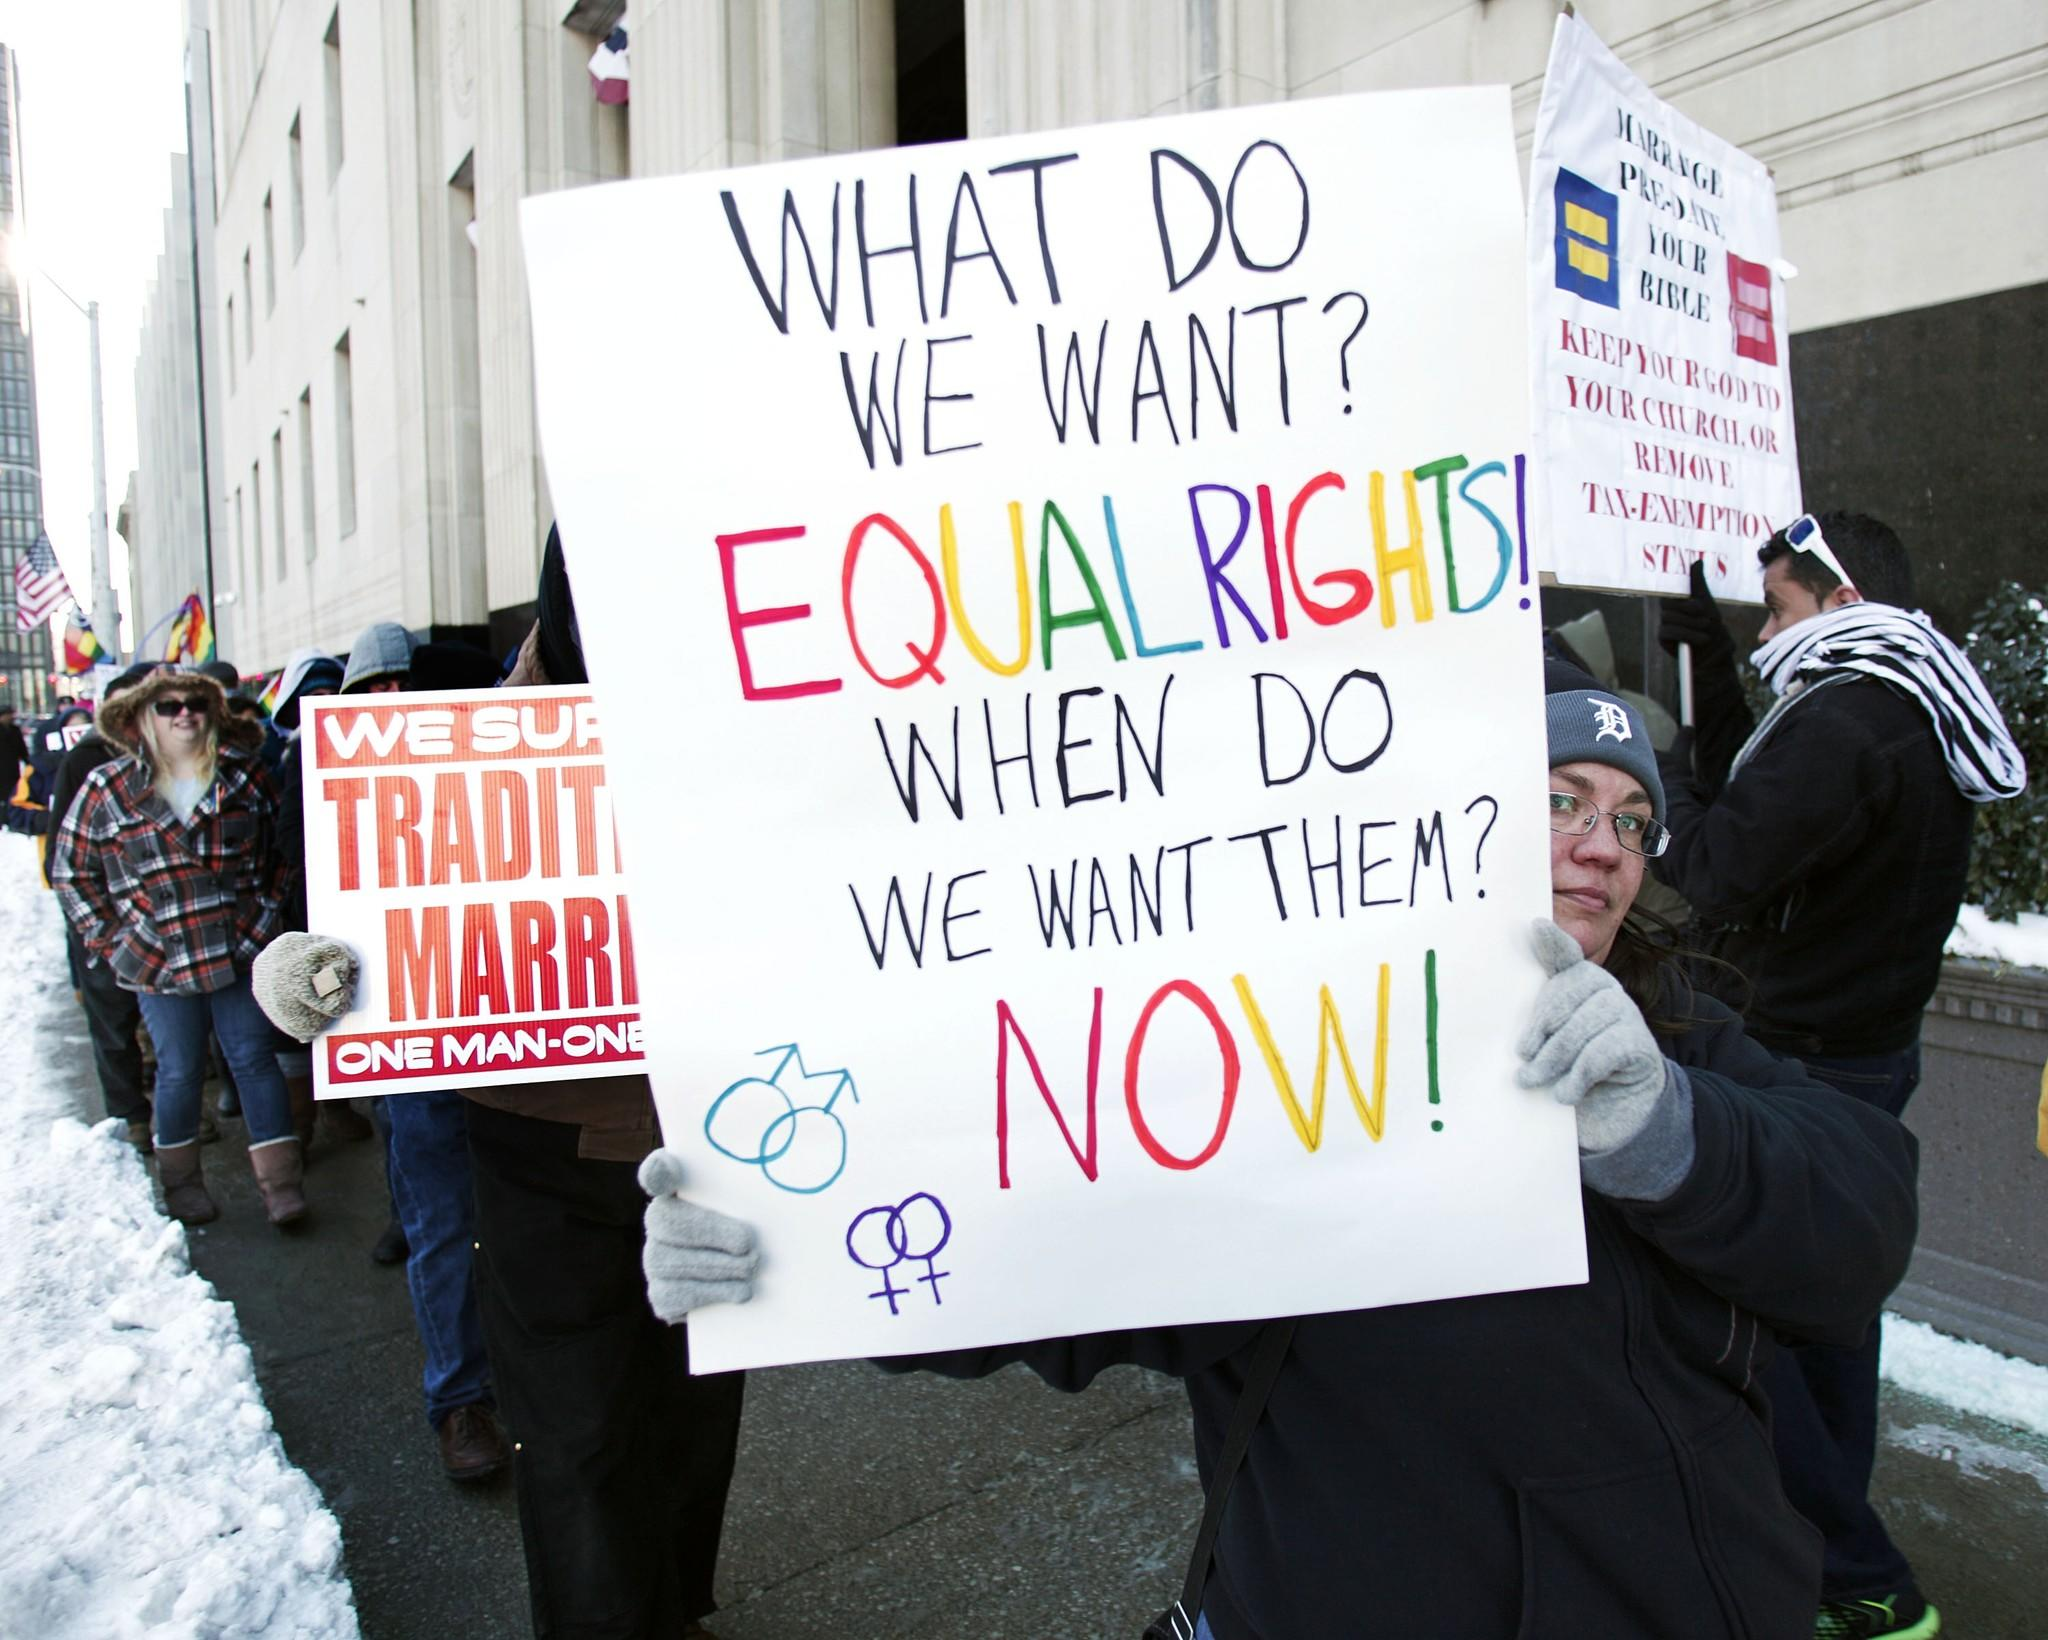 Gay marriage supporters protest next to pro-traditional marriage supporters in Detroit on March 3.